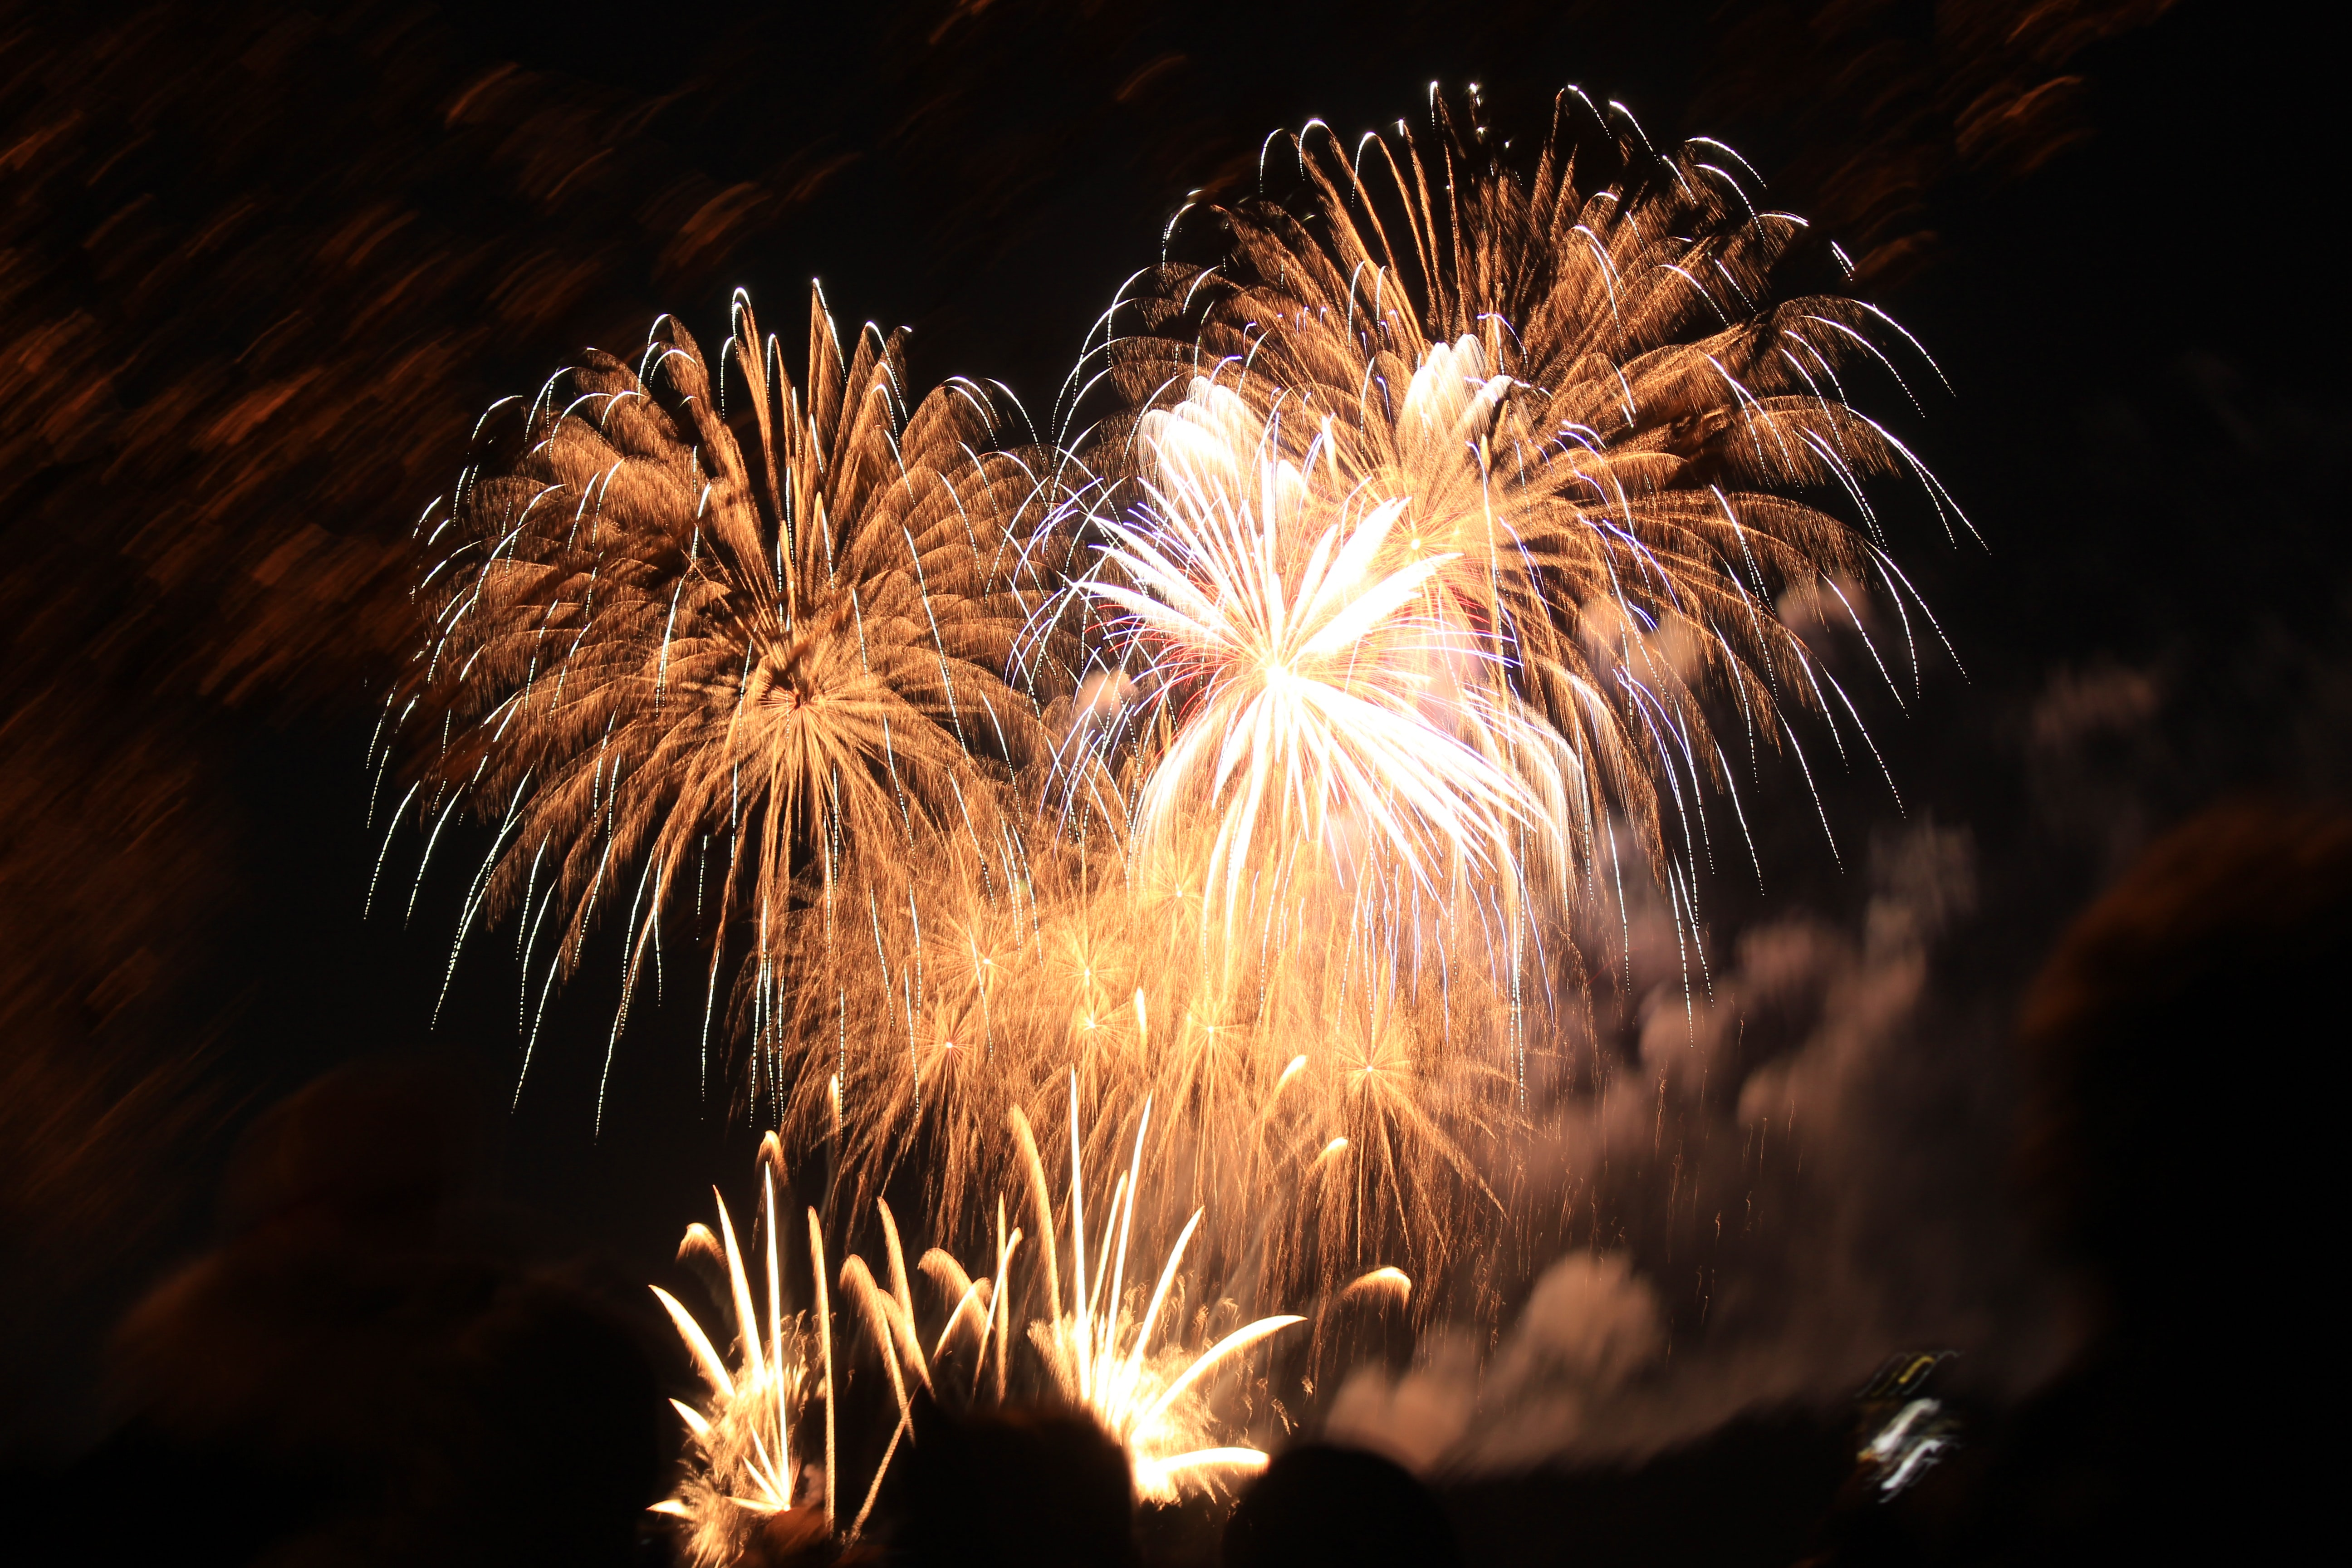 low angle-view of fireworks